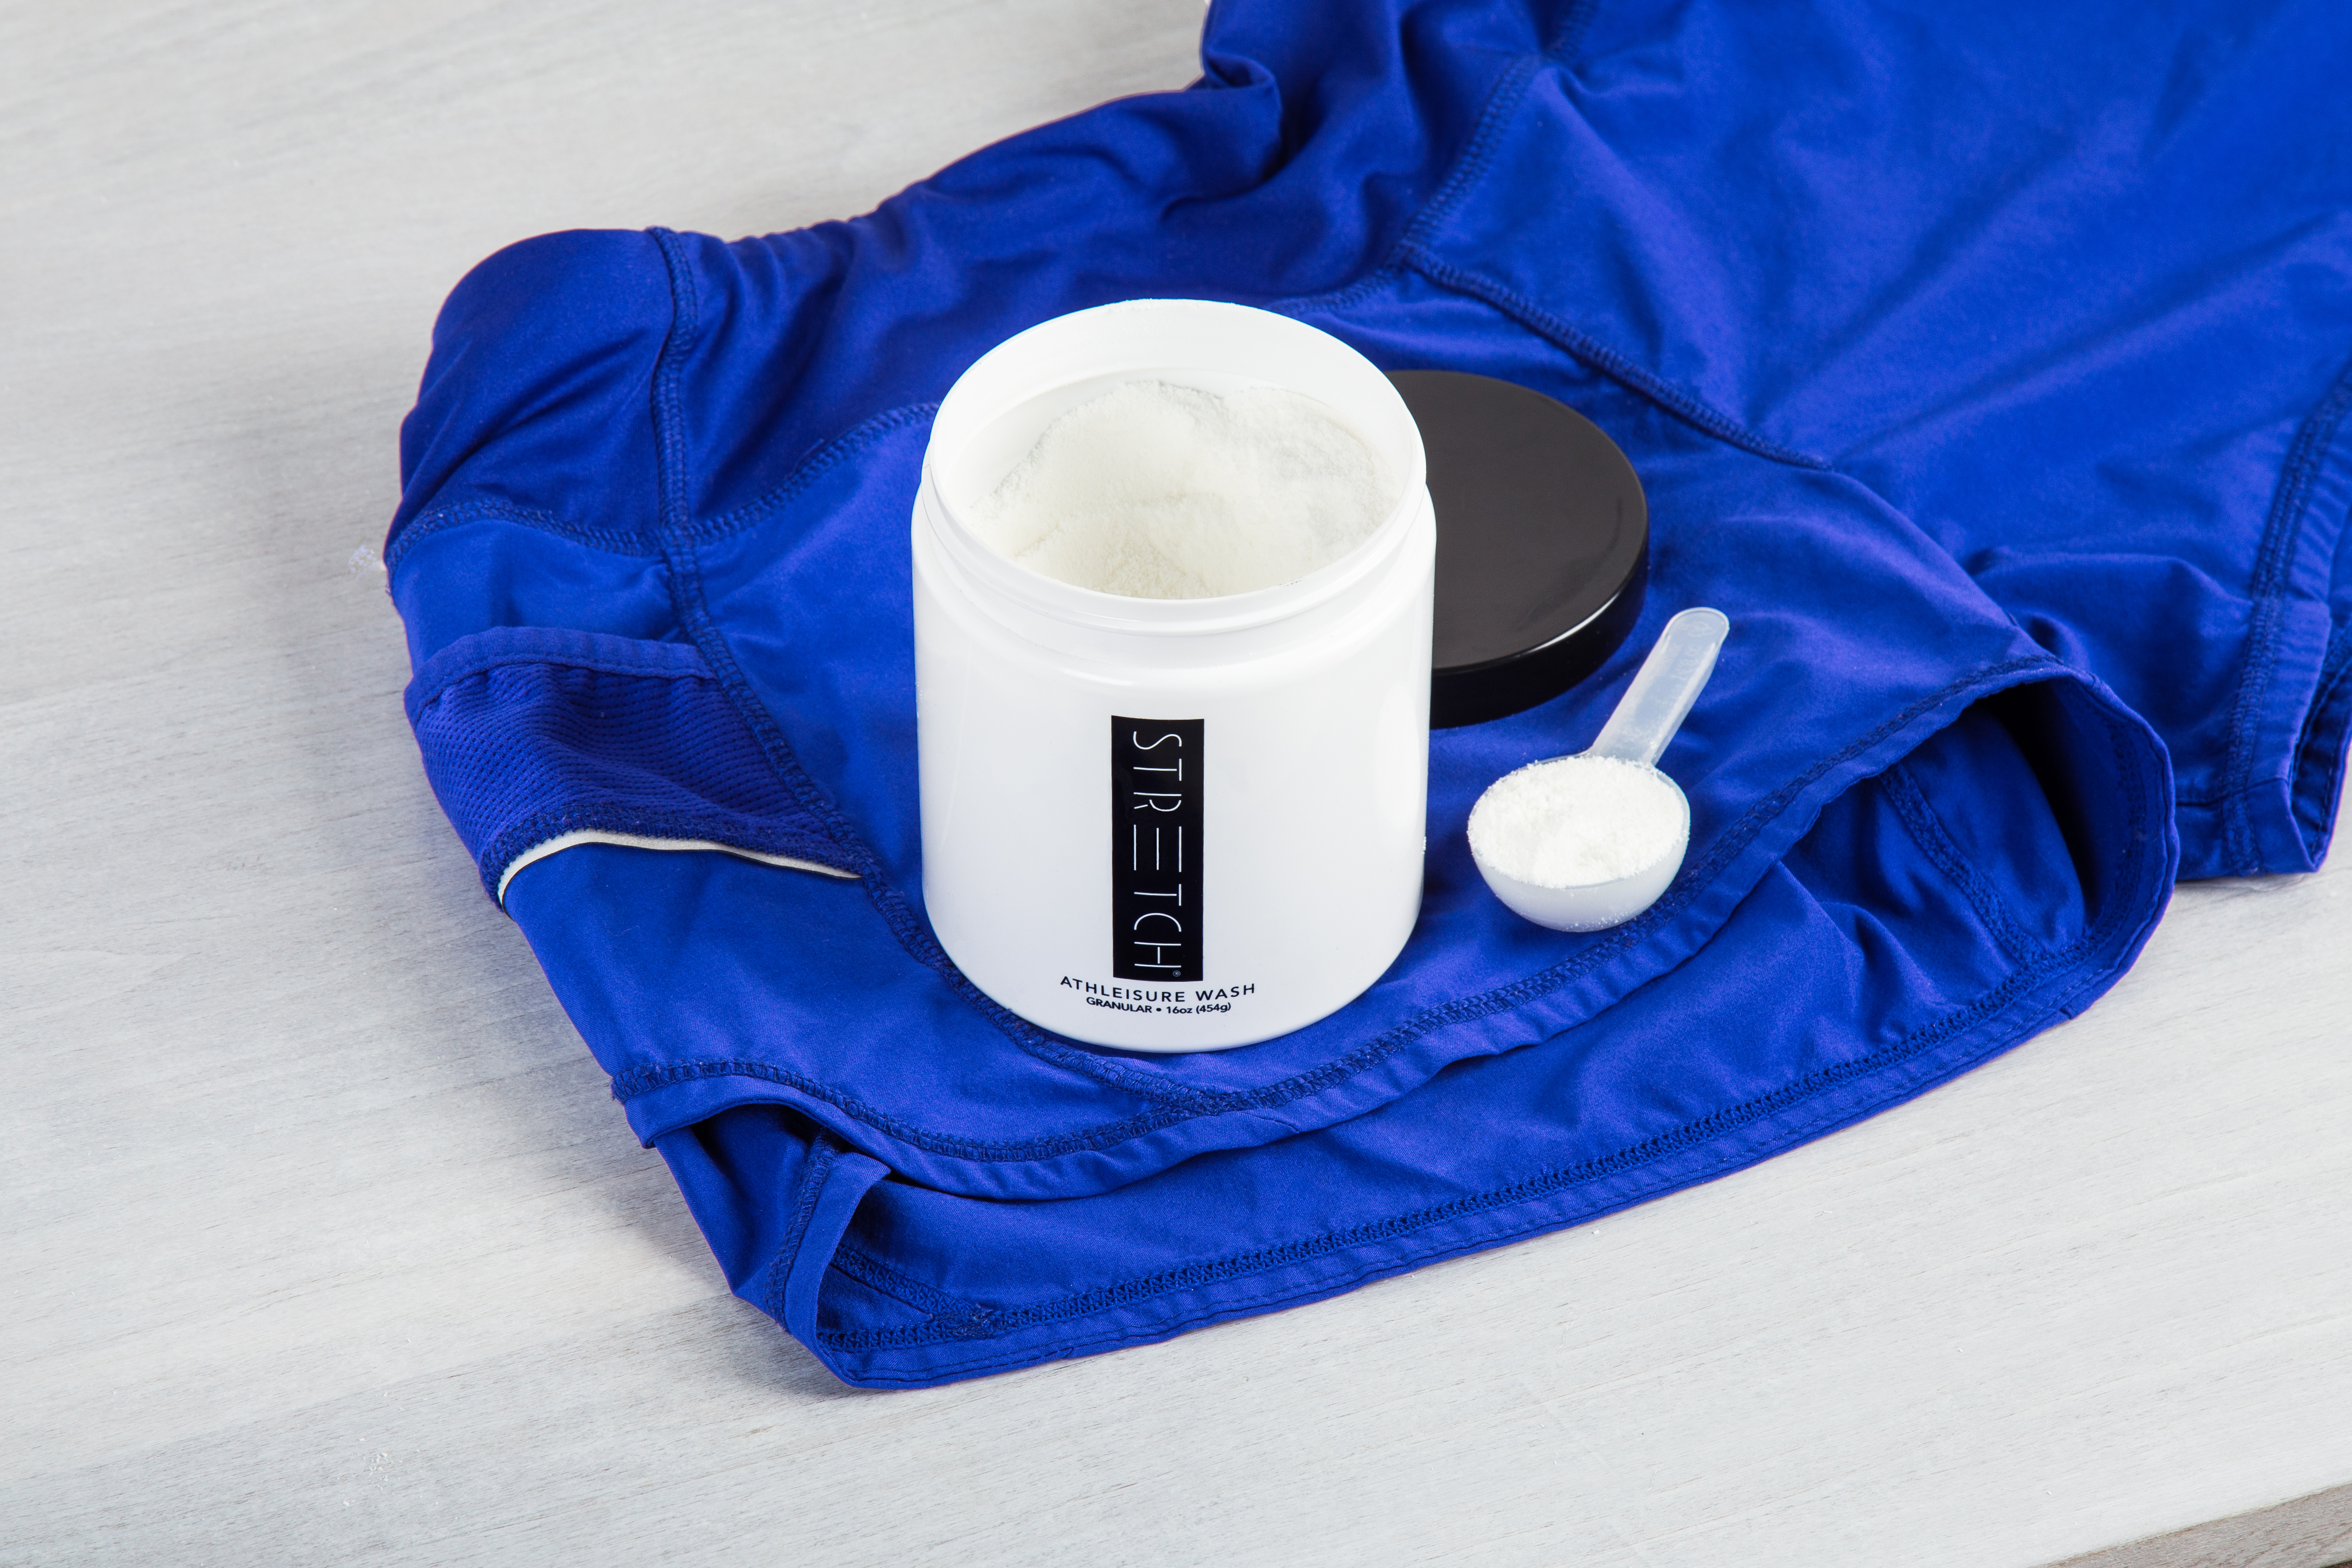 A jar of STRETCH activewear laundry detergent sits atop blue workout gear